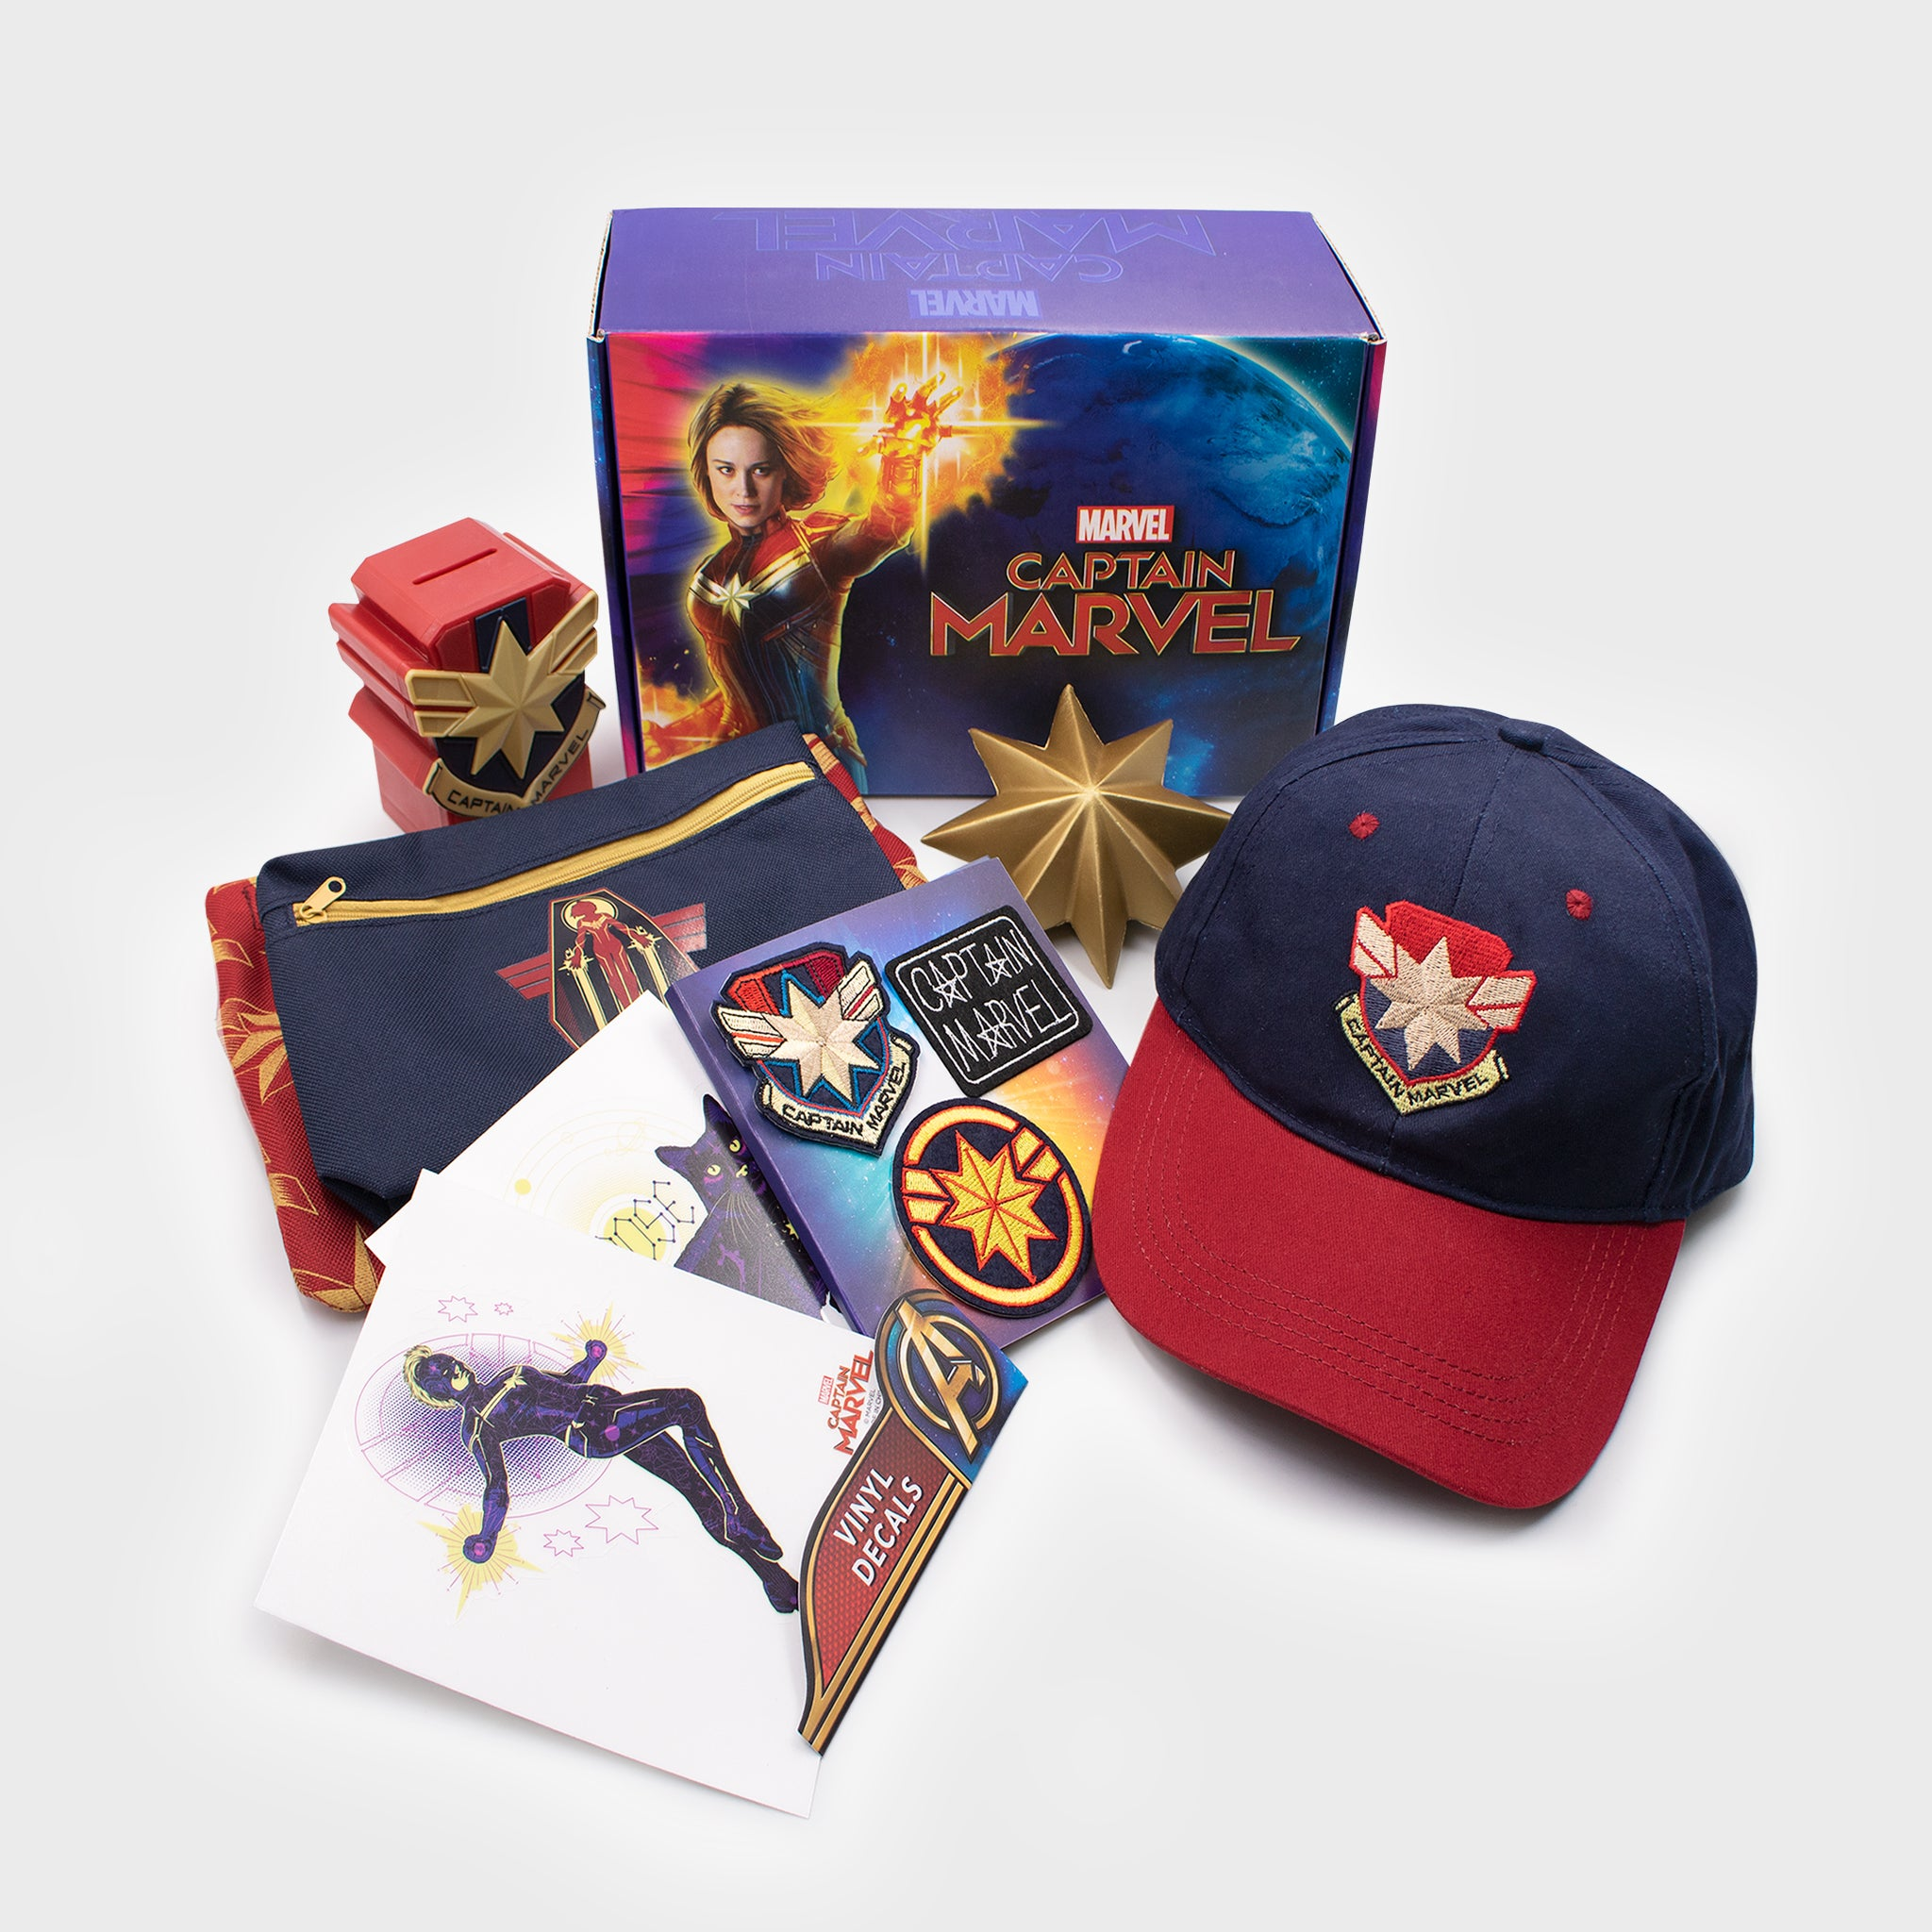 Captain Marvel Collector's Box